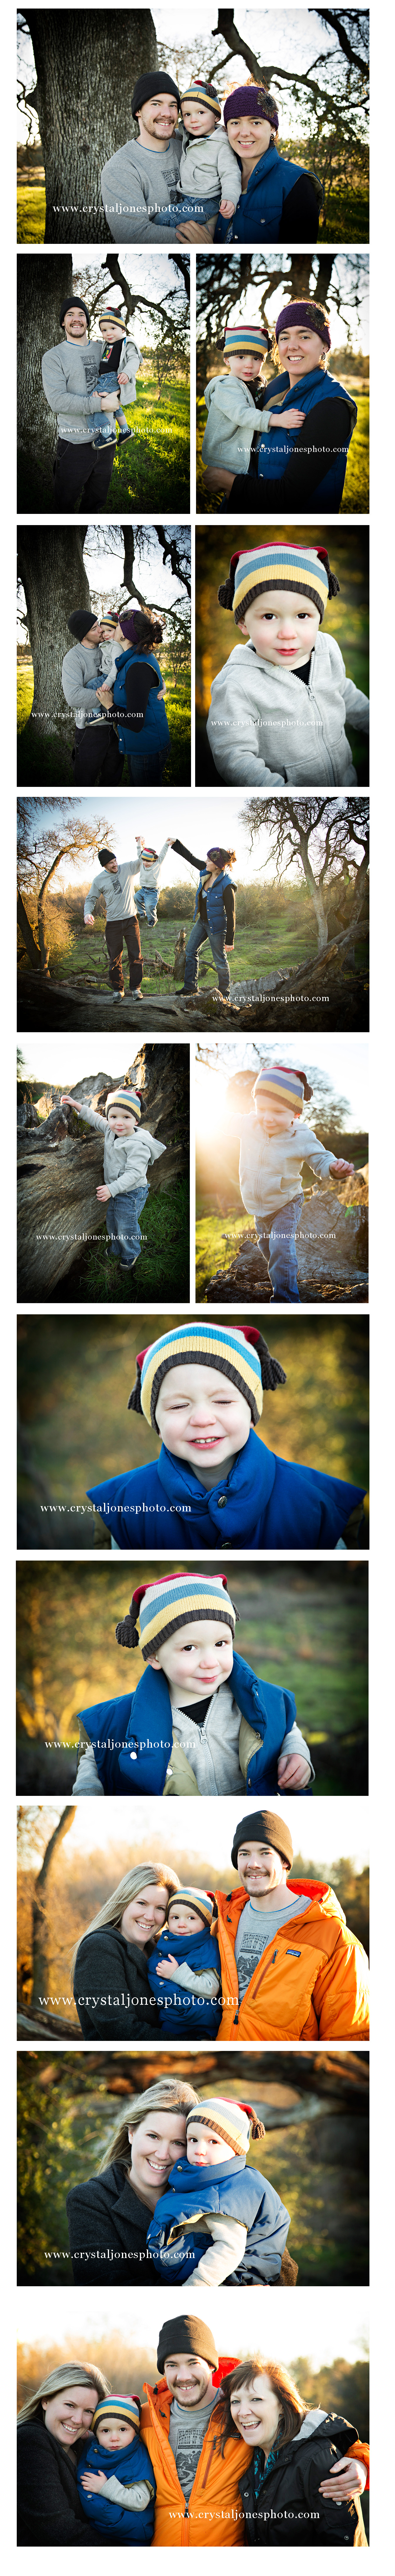 outdoor sunset family portraits at maidu park in roseville california